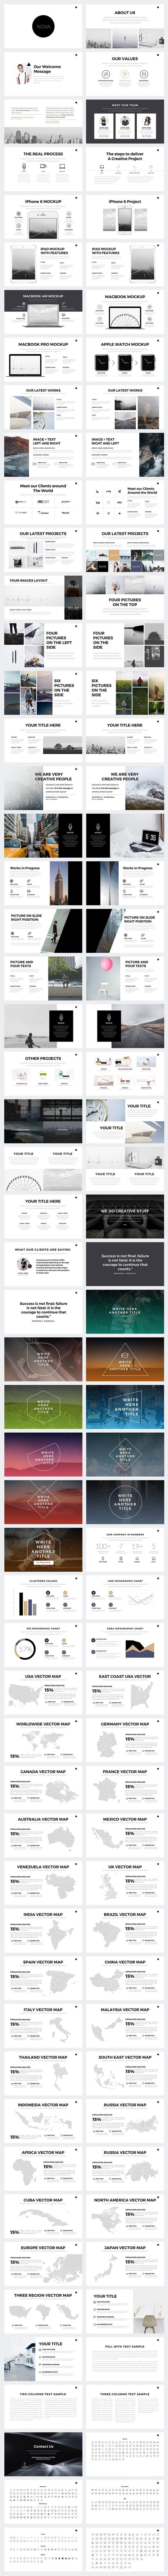 Nova Minimal PowerPoint Template by Slidedizer on @creativemarket                                                                                                                                                                                 More